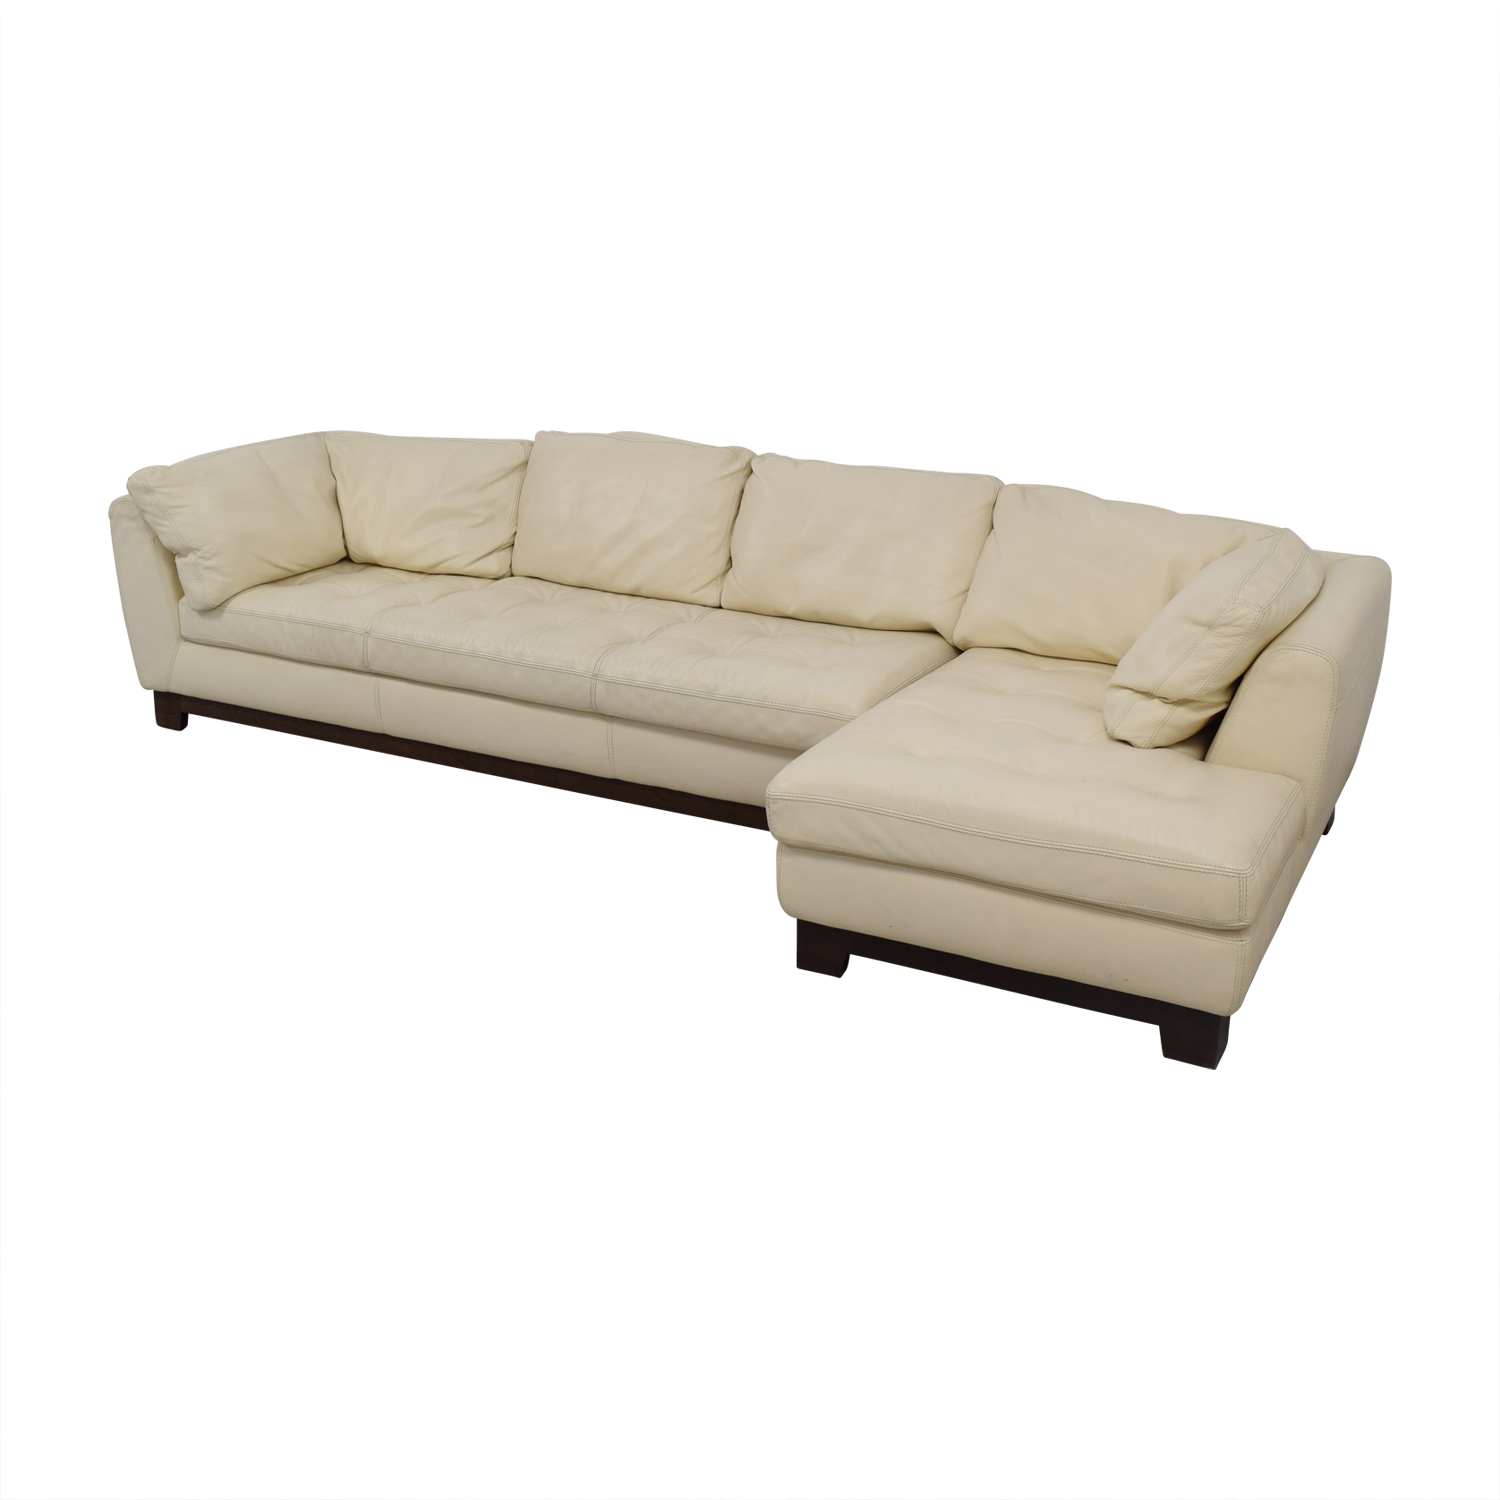 Roche Bobois Cream Leather Chaise Sectional Sofas